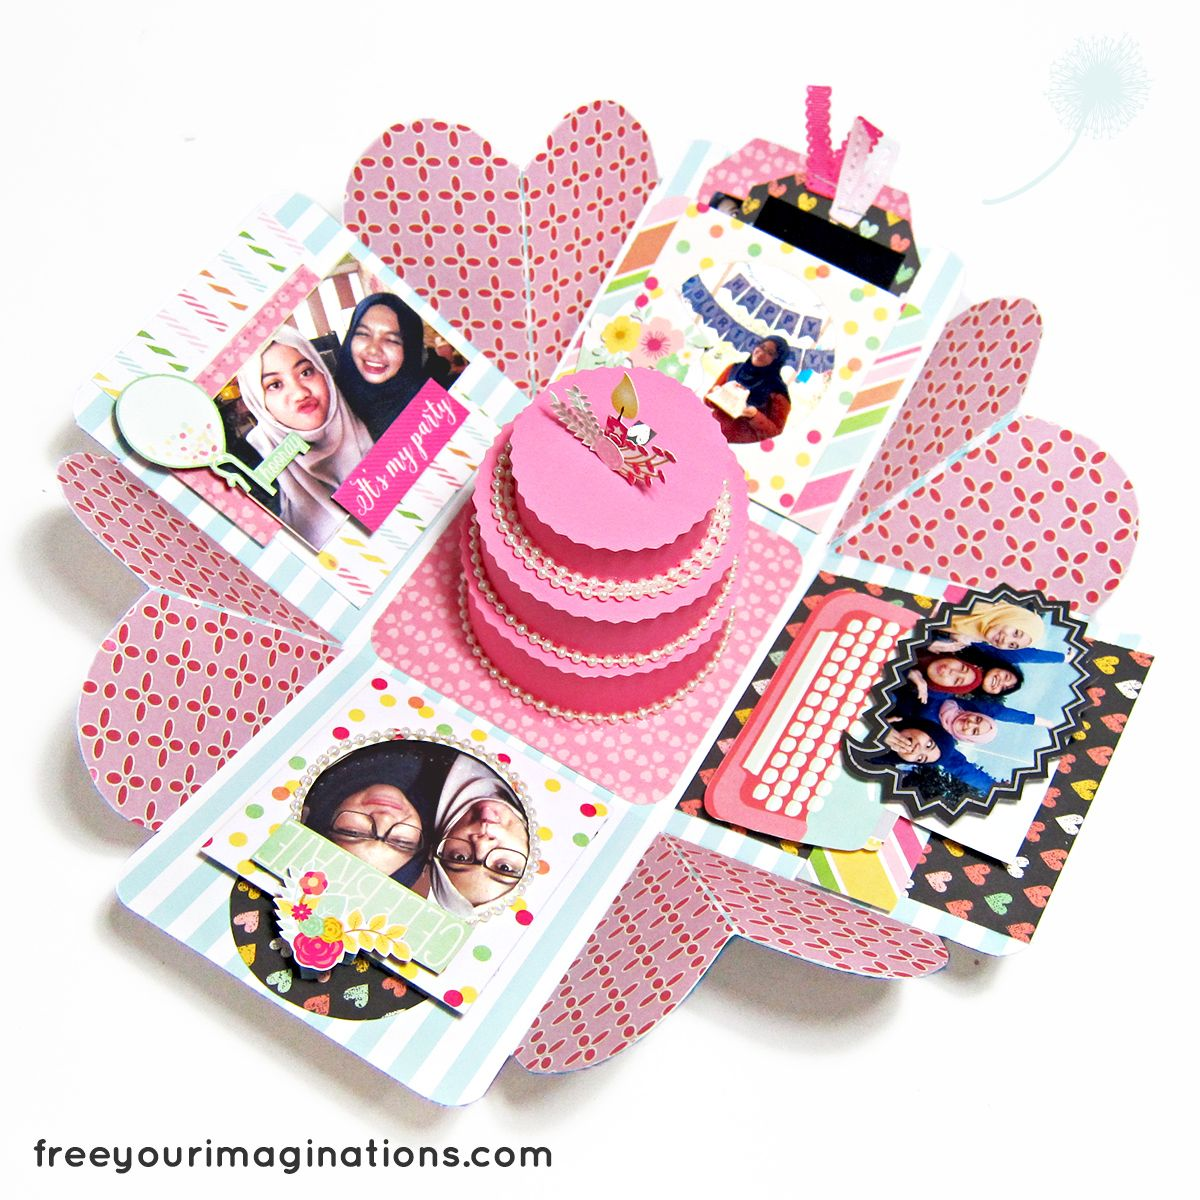 This Is The Inside View Of BIRTHDAY GIFT For Best-friend With Pink Lover Design Theme Featuring